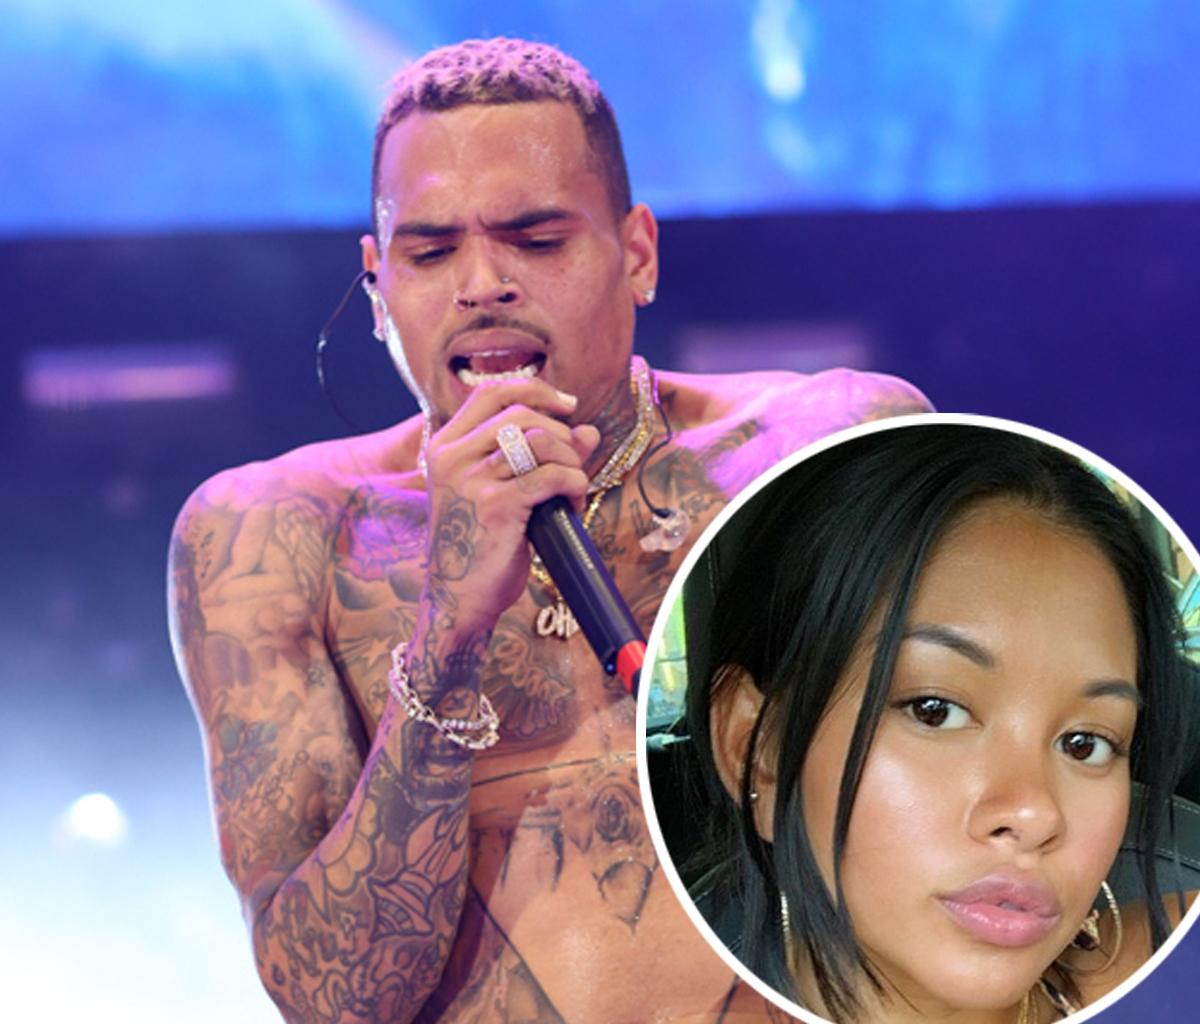 Ammika Harris Surprises Fans With A Photo Featuring Herself And Chris Brown - A Word She Used In Her Message Has People Talking!